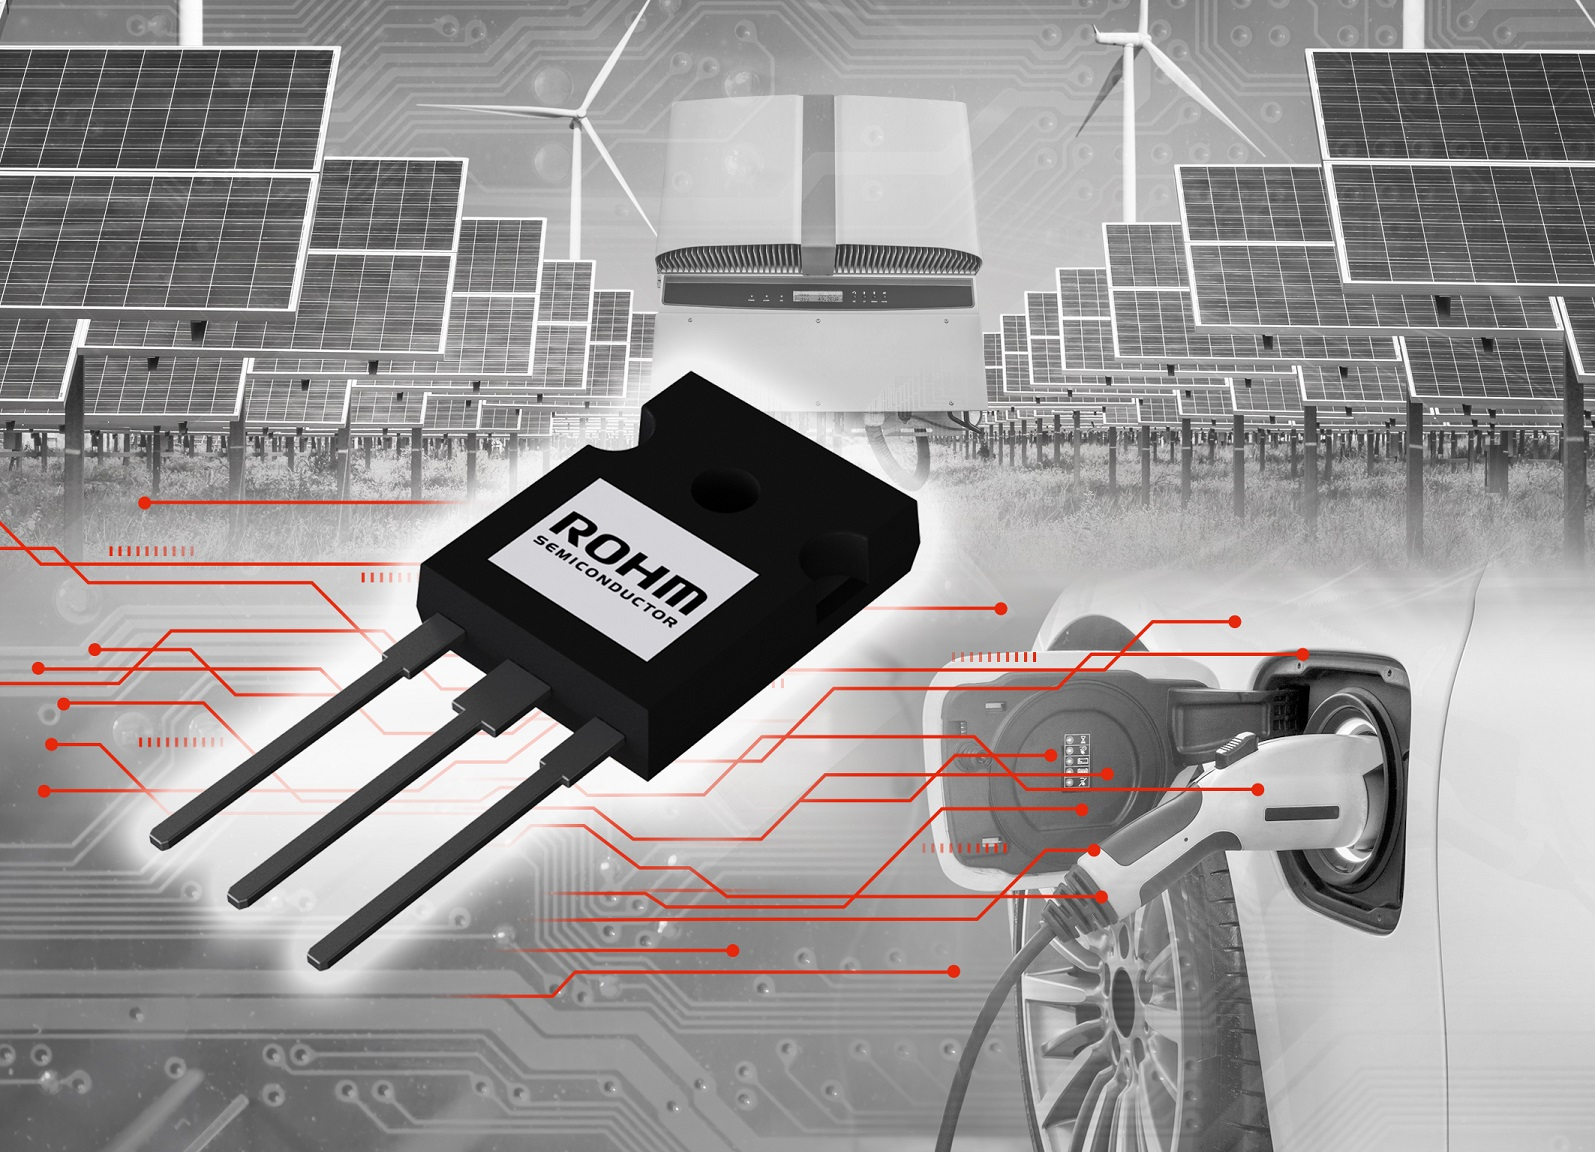 IGBTs incorporate 650-V SiC Schottky barrier diode July 19, 2021 By Redding Traiger